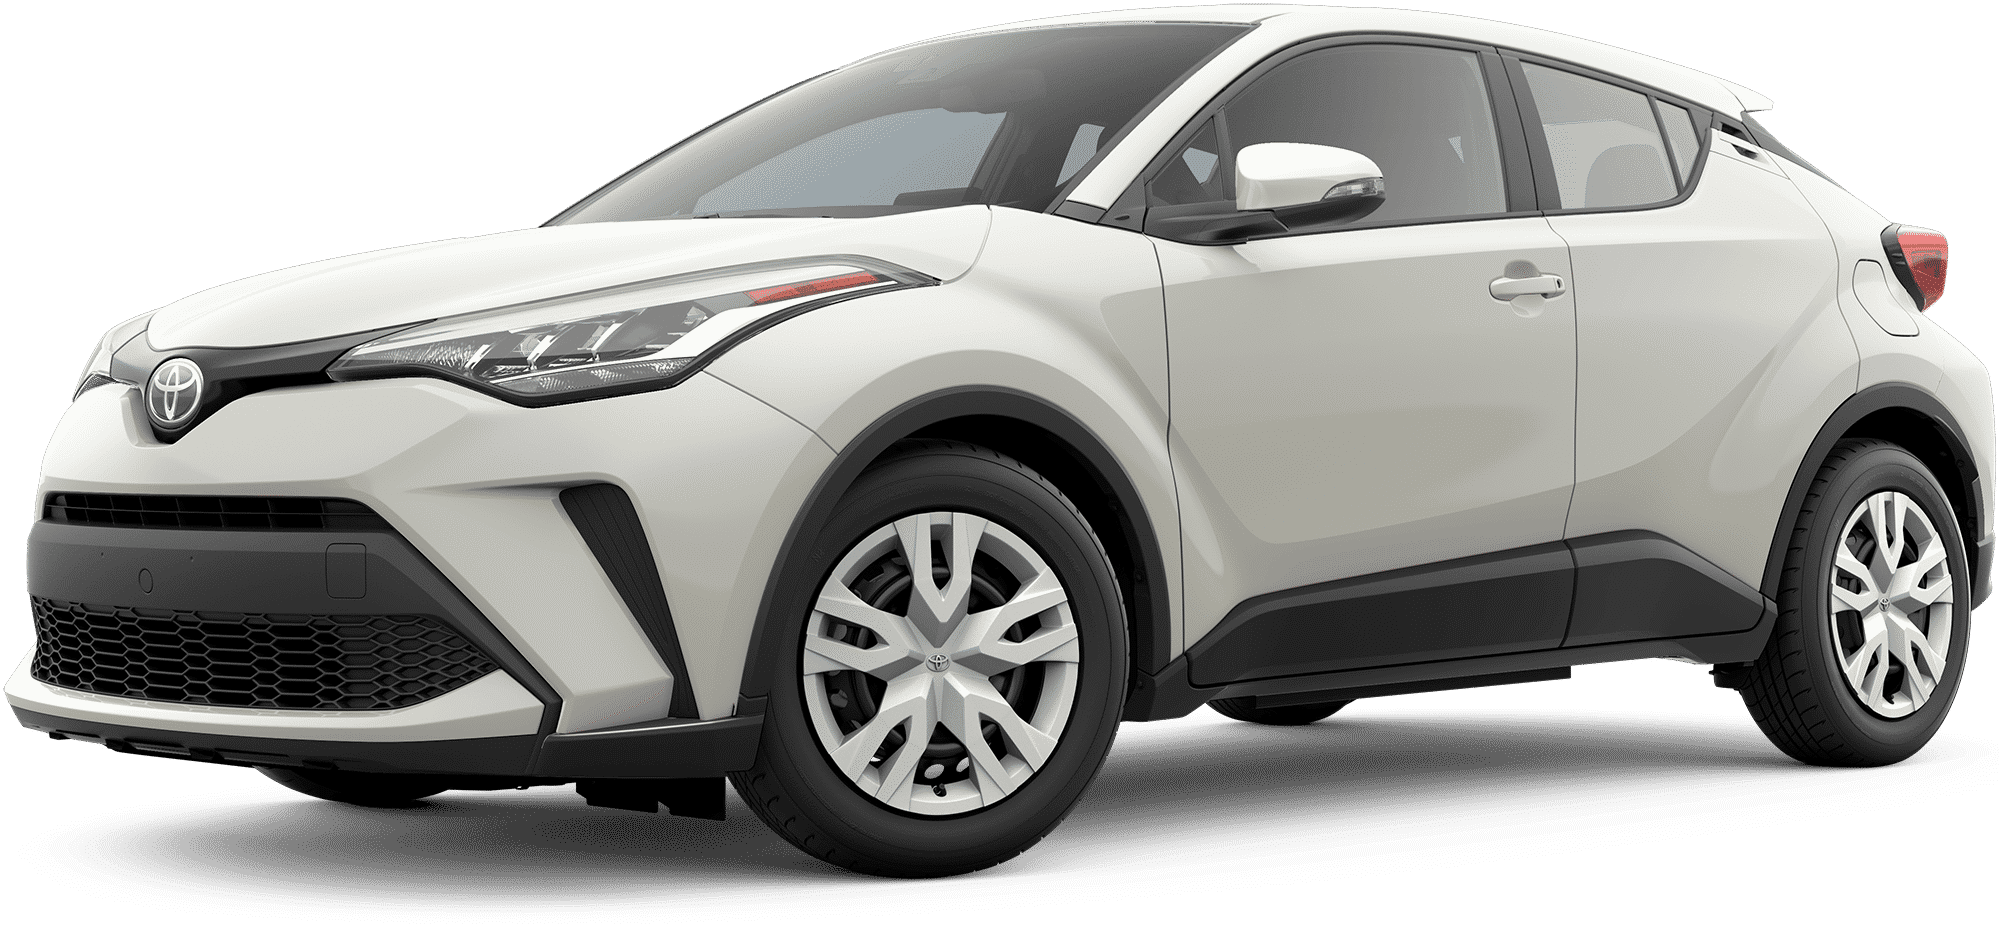 2020 Toyota CHR Pricing, Review, & Specs